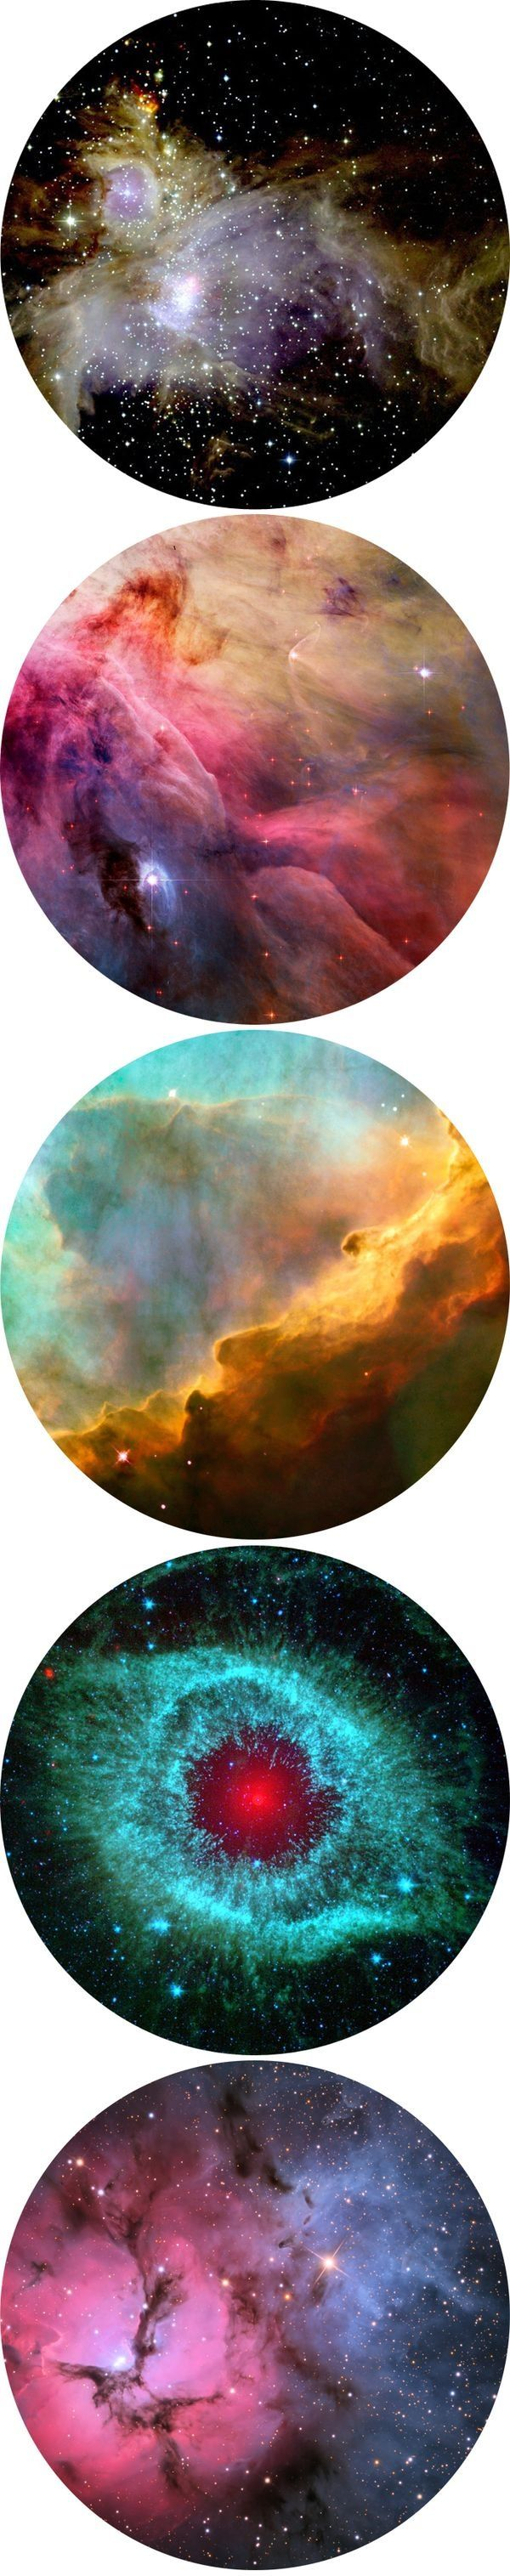 These circular space pictures are really clever as the shape of them makes them actually look like undiscovered planets.